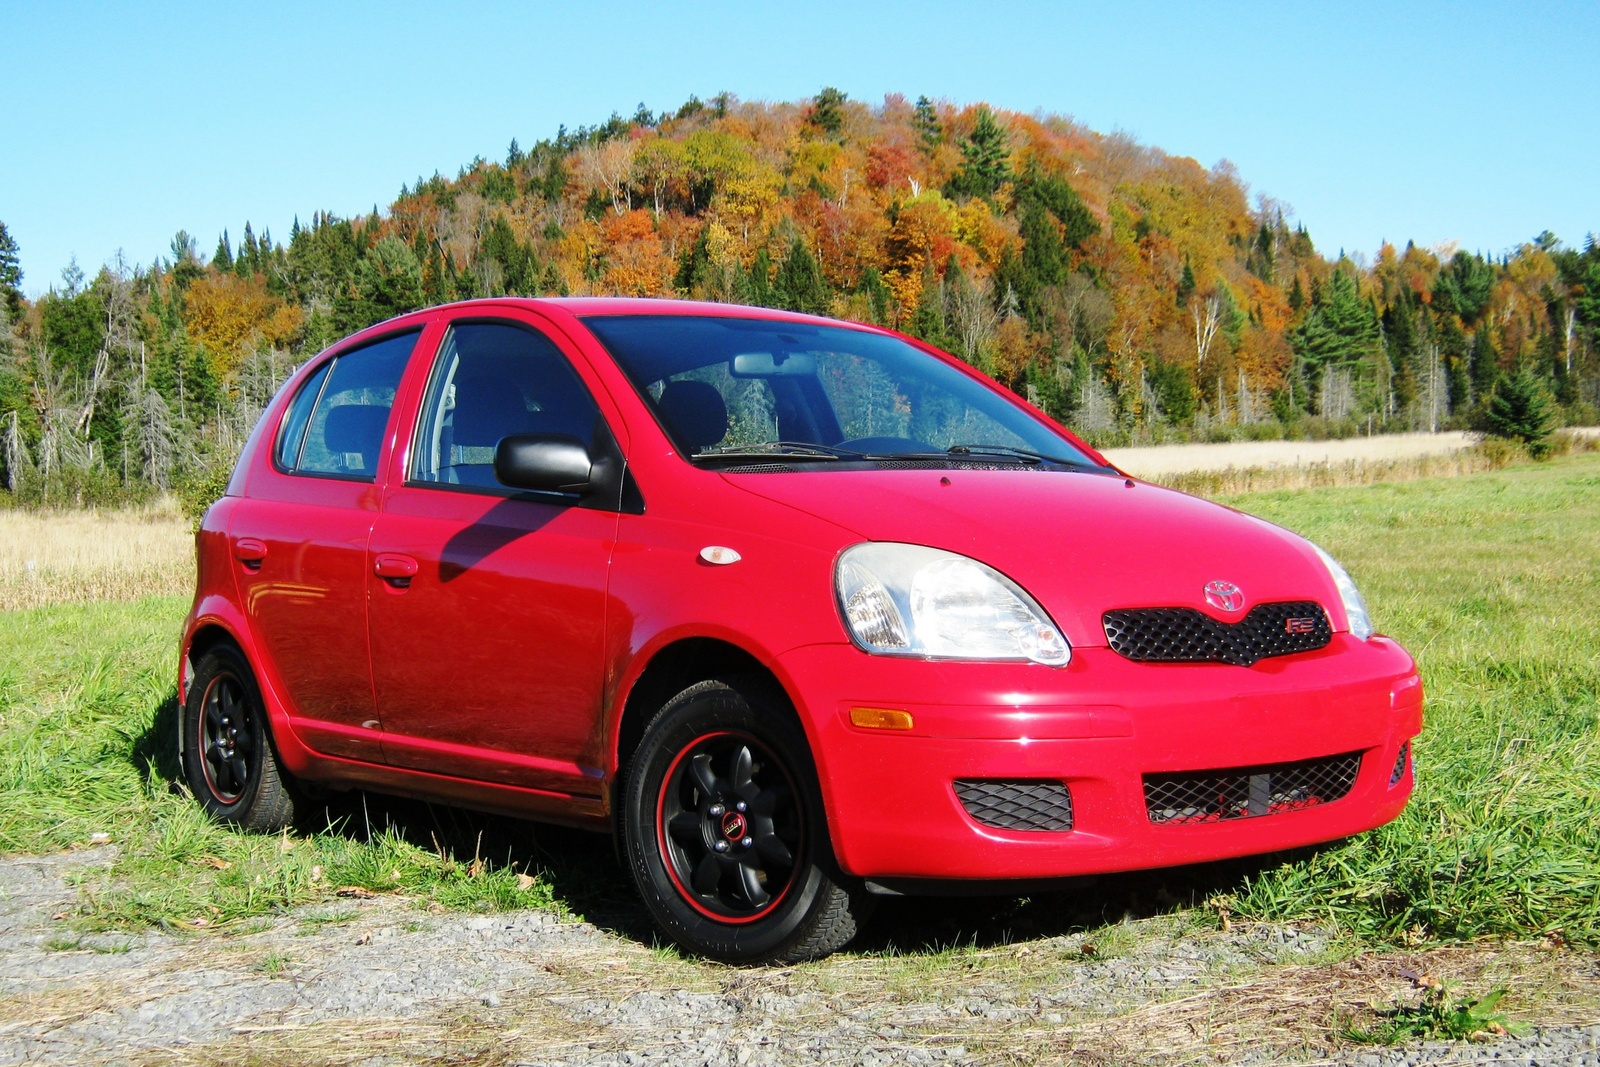 2005 Toyota ECHO 2 Dr STD Coupe picture, exterior